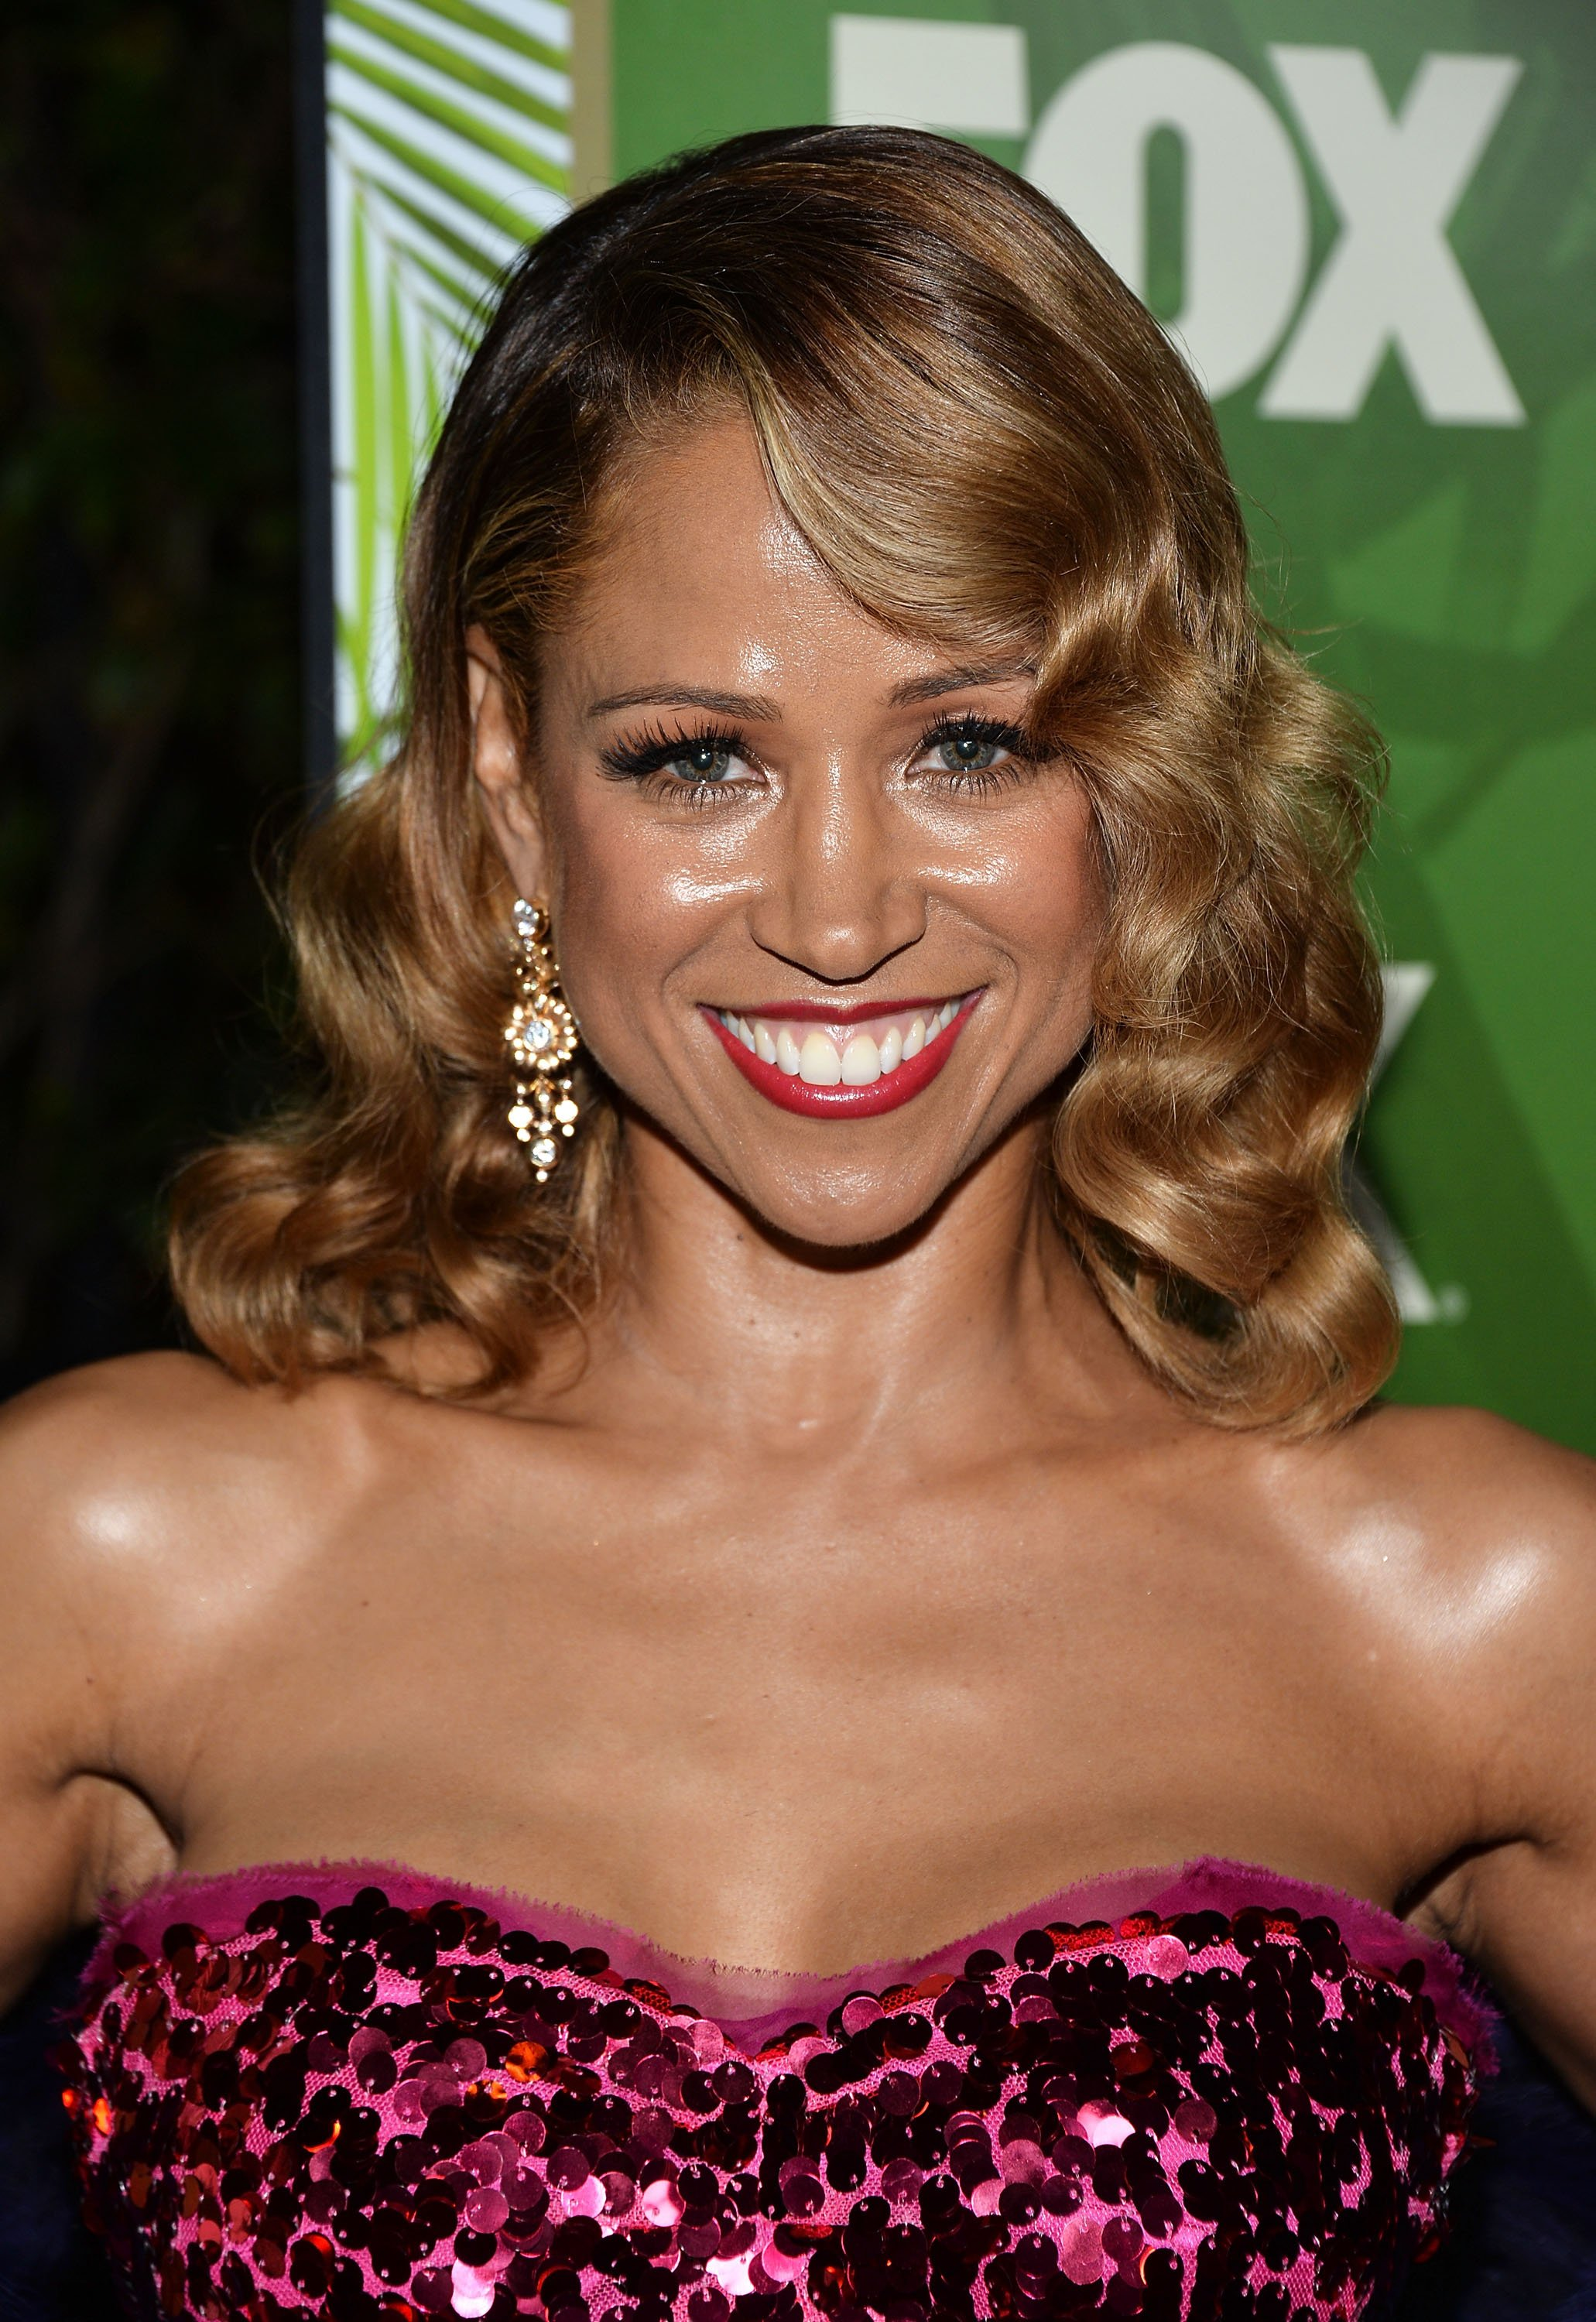 Stacey Dash arrives at the FOX, 20th Century FOX Television, FX Networks and National Geographic Channel's 2014 Emmy Award Nominee Celebration at Vibiana on August 25, 2014 in Los Angeles